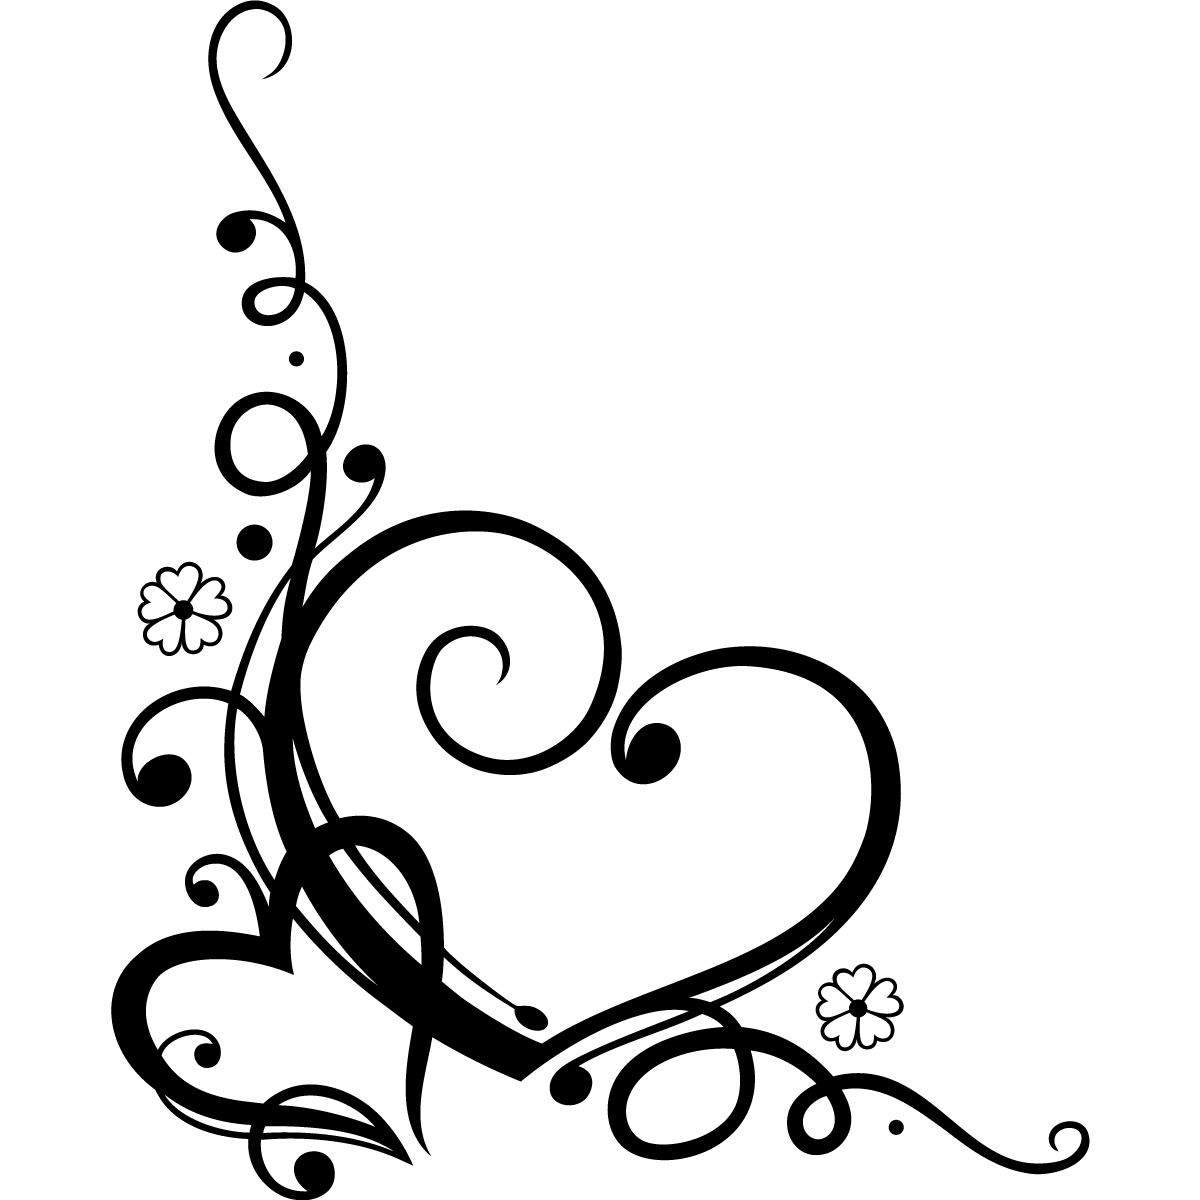 Heart Swirl Clipart | Free download on ClipArtMag